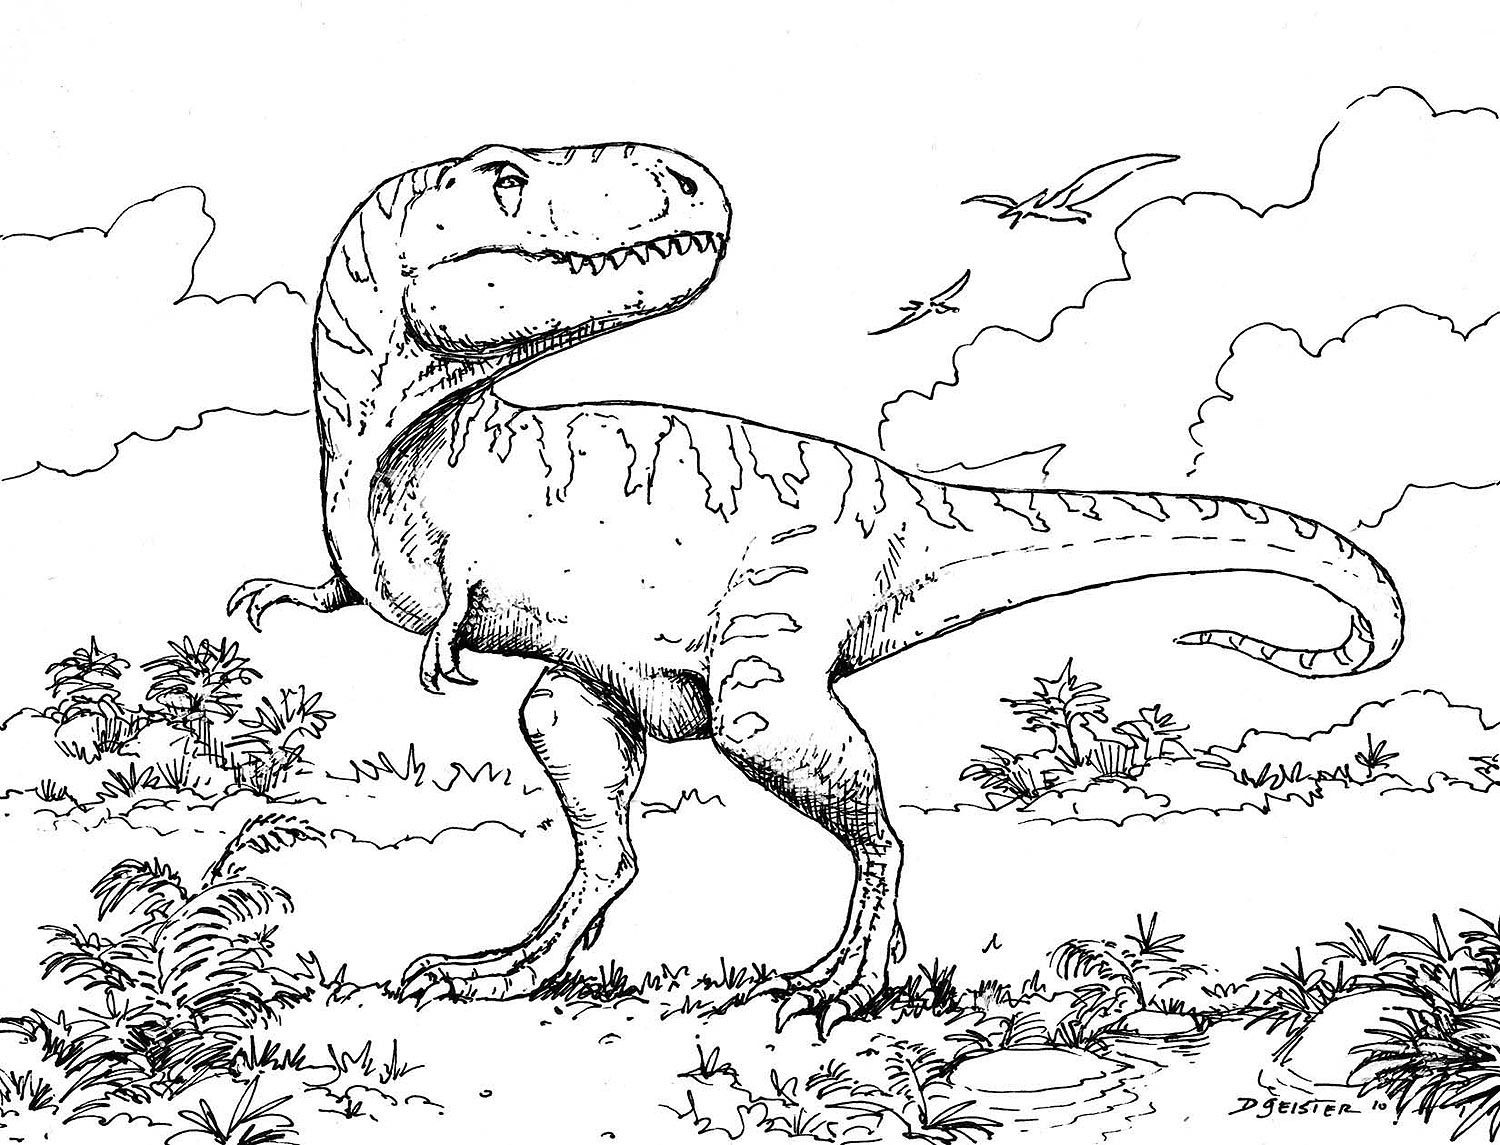 Coloring Pages : Coloring Pages Fabulous Dinosaurs Lego Games - Free Printable Dinosaur Coloring Pages